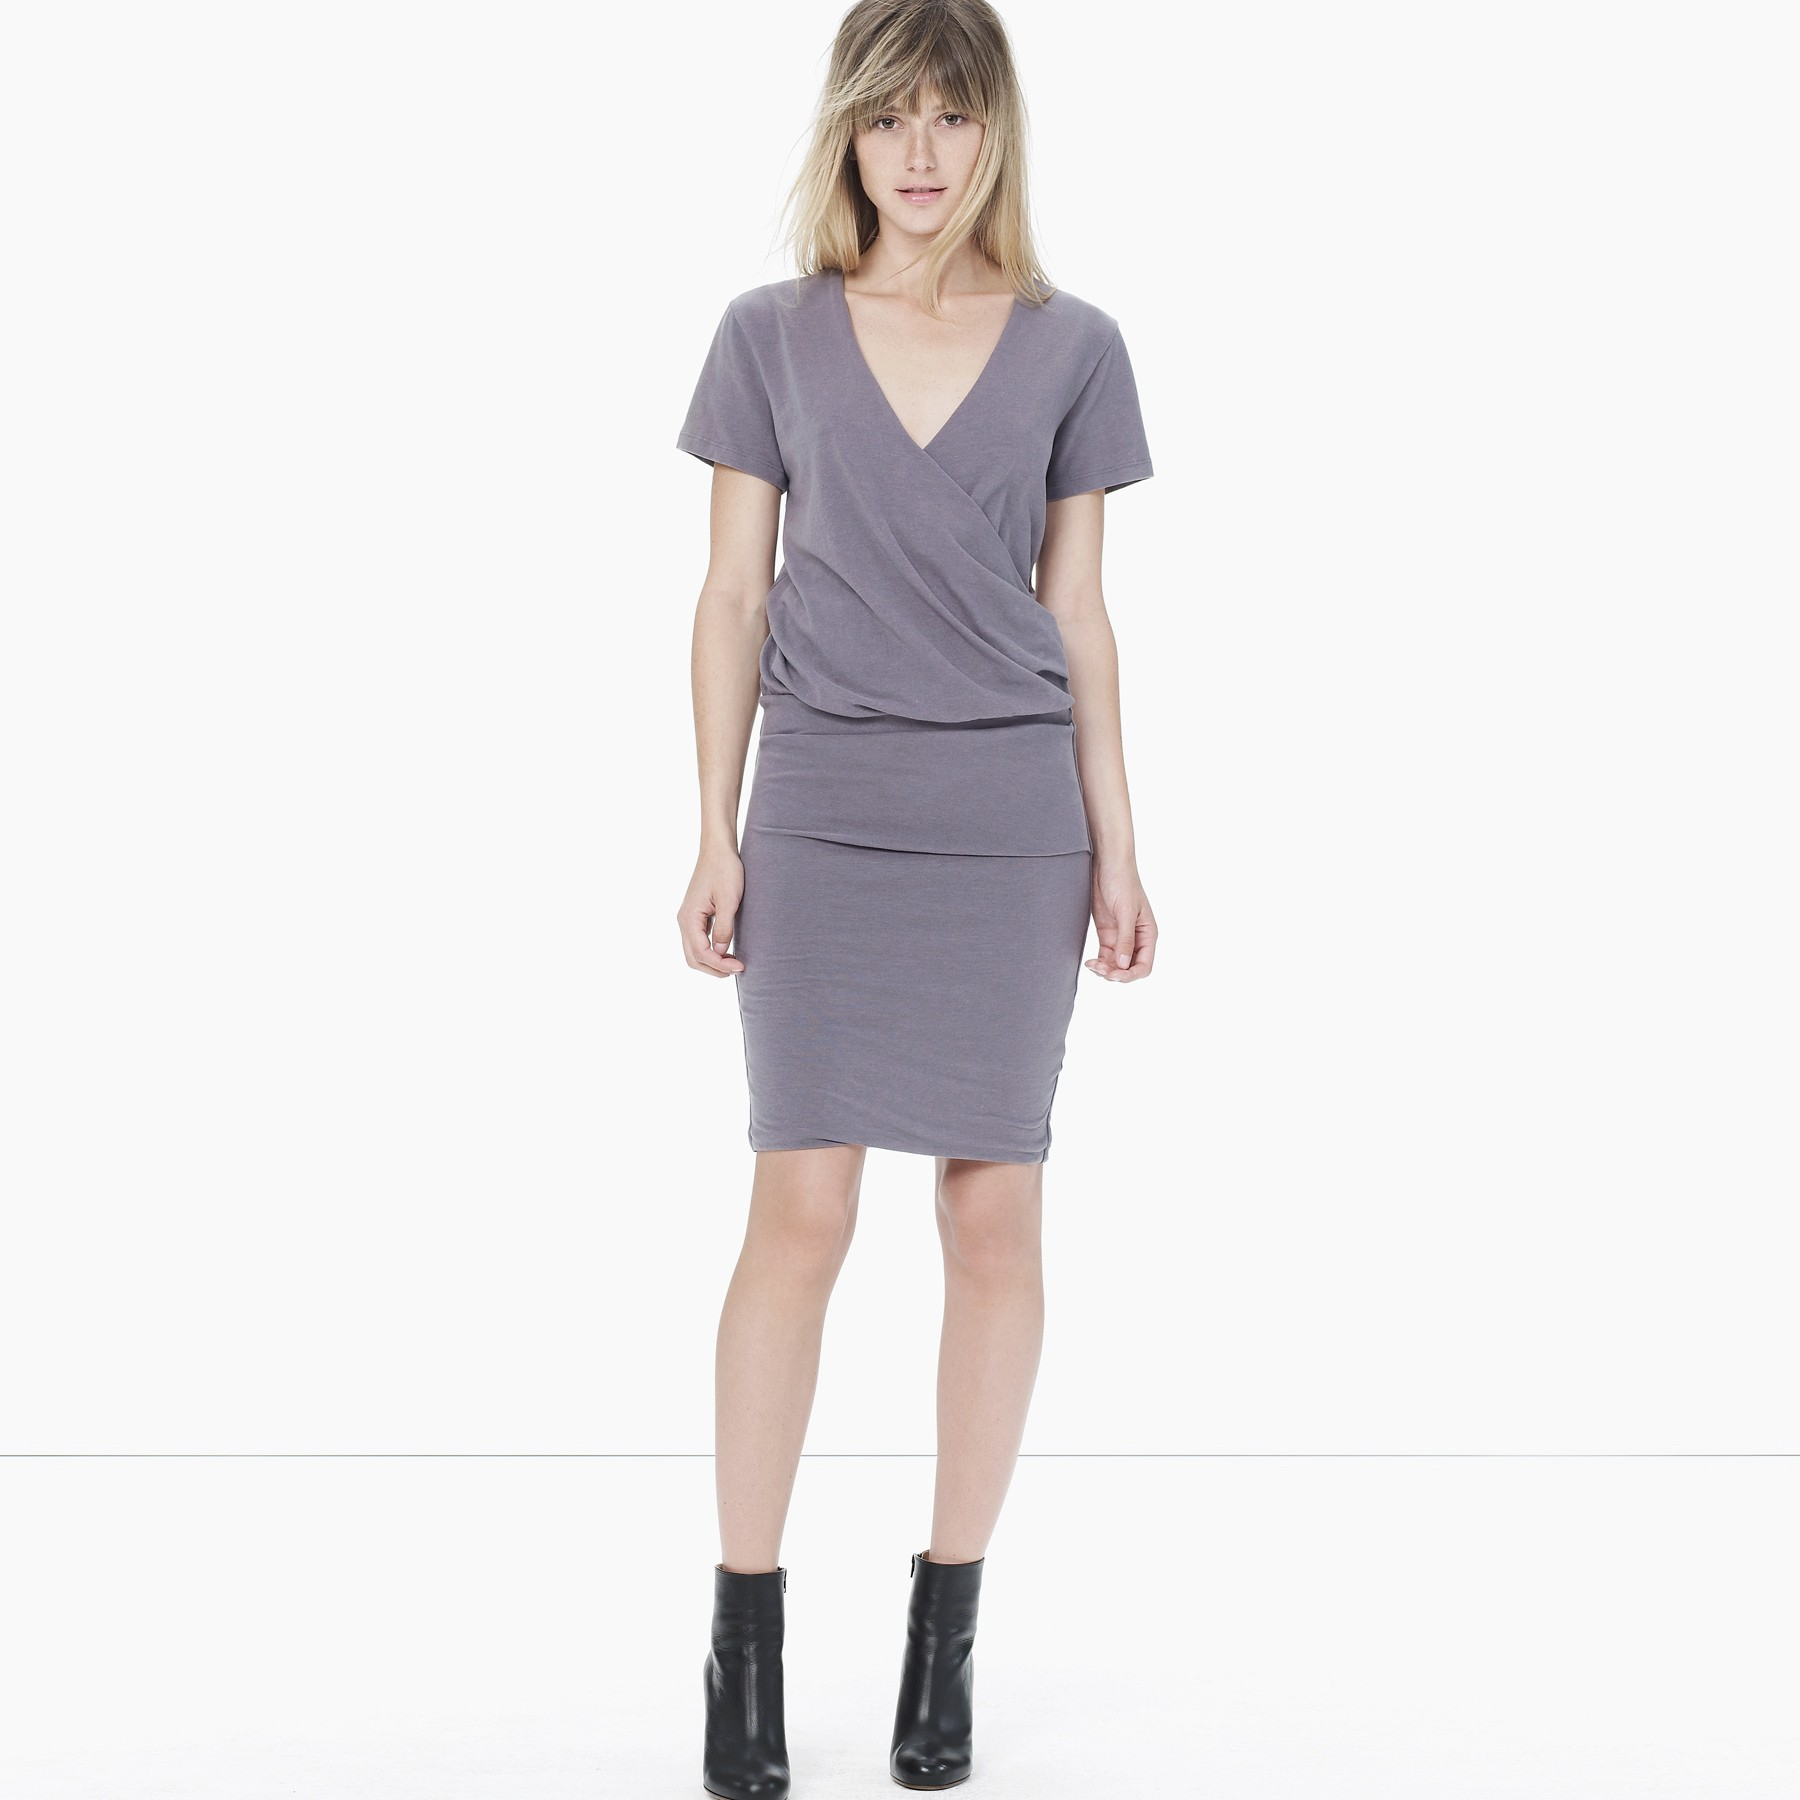 1ade2ff512a James Perse Sueded Stretch Jersey Wrap Dress in Gray - Lyst